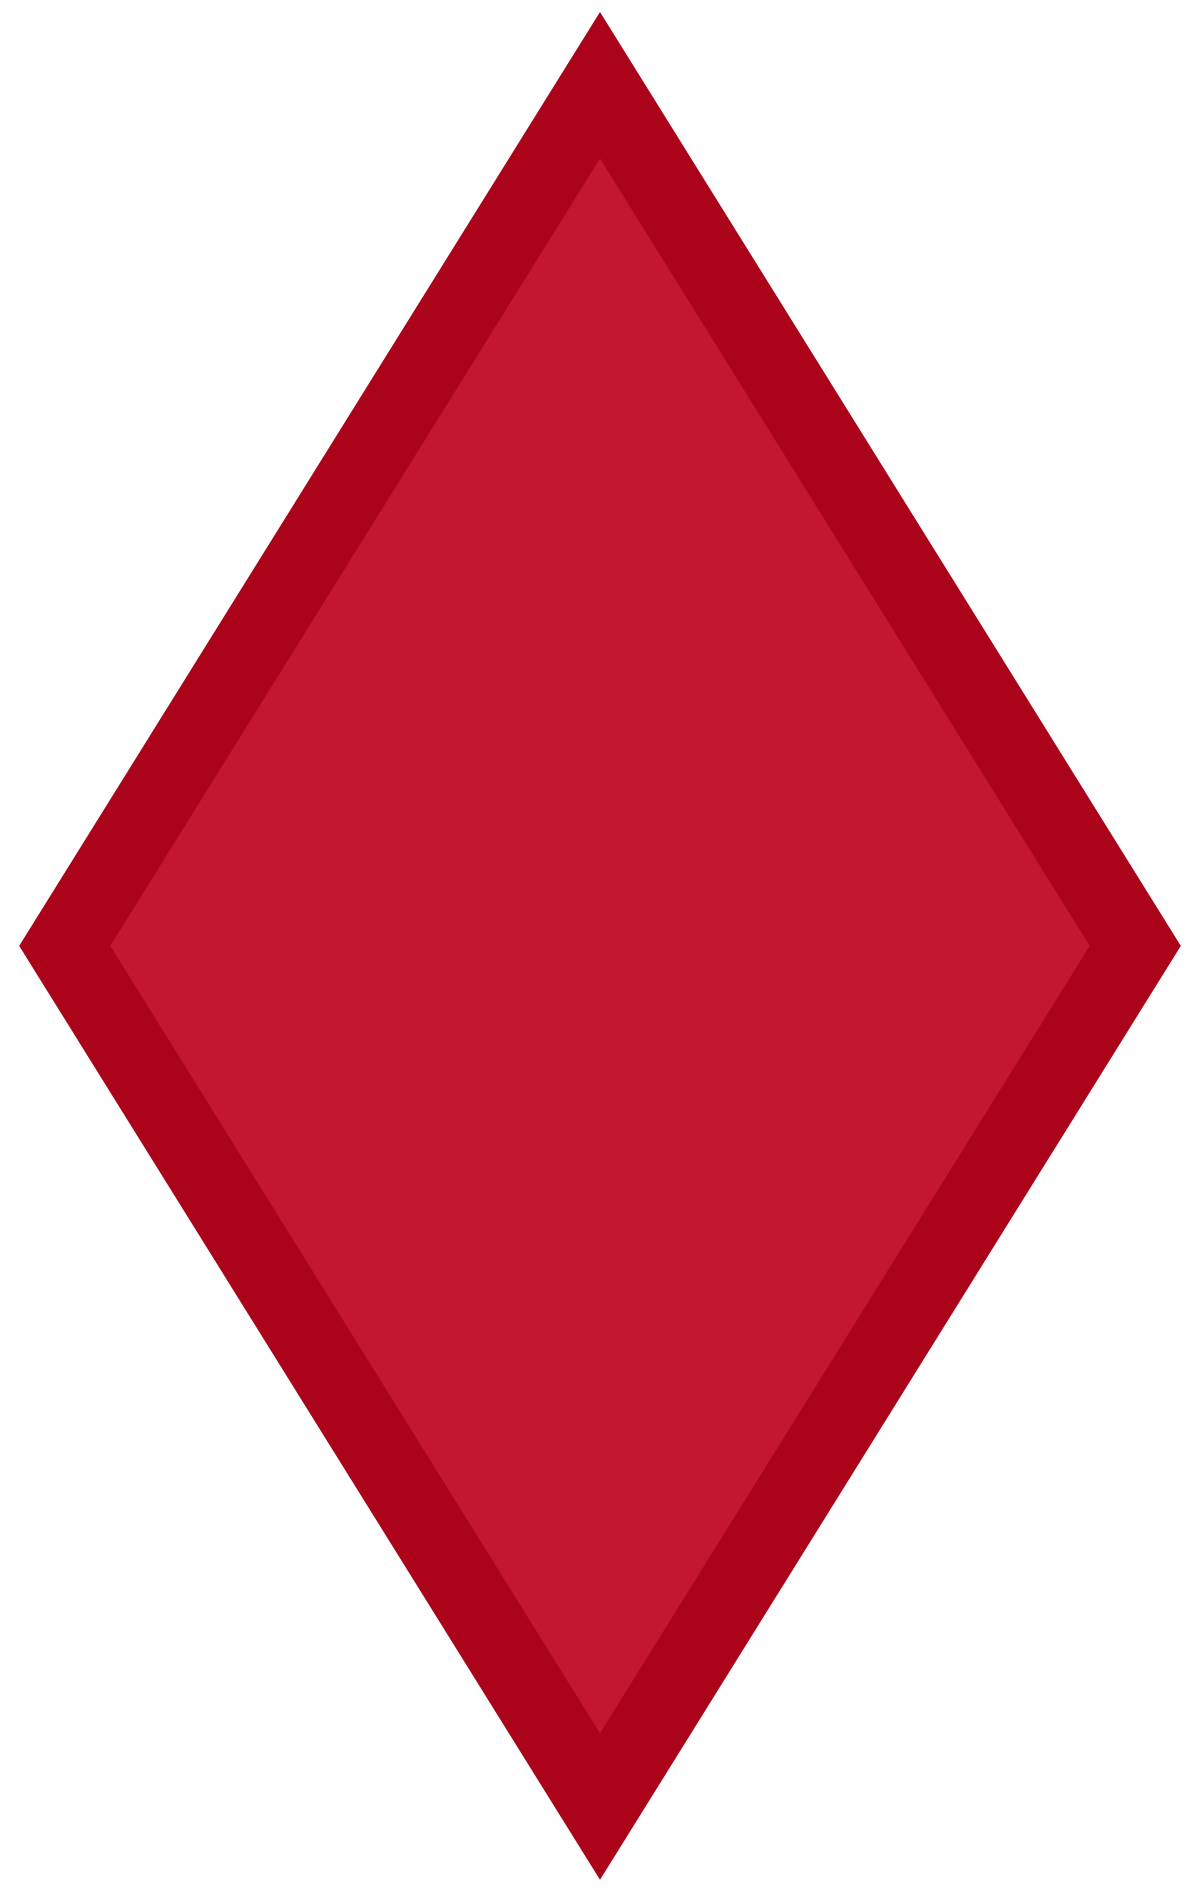 Red diamond shape png. Th infantry division